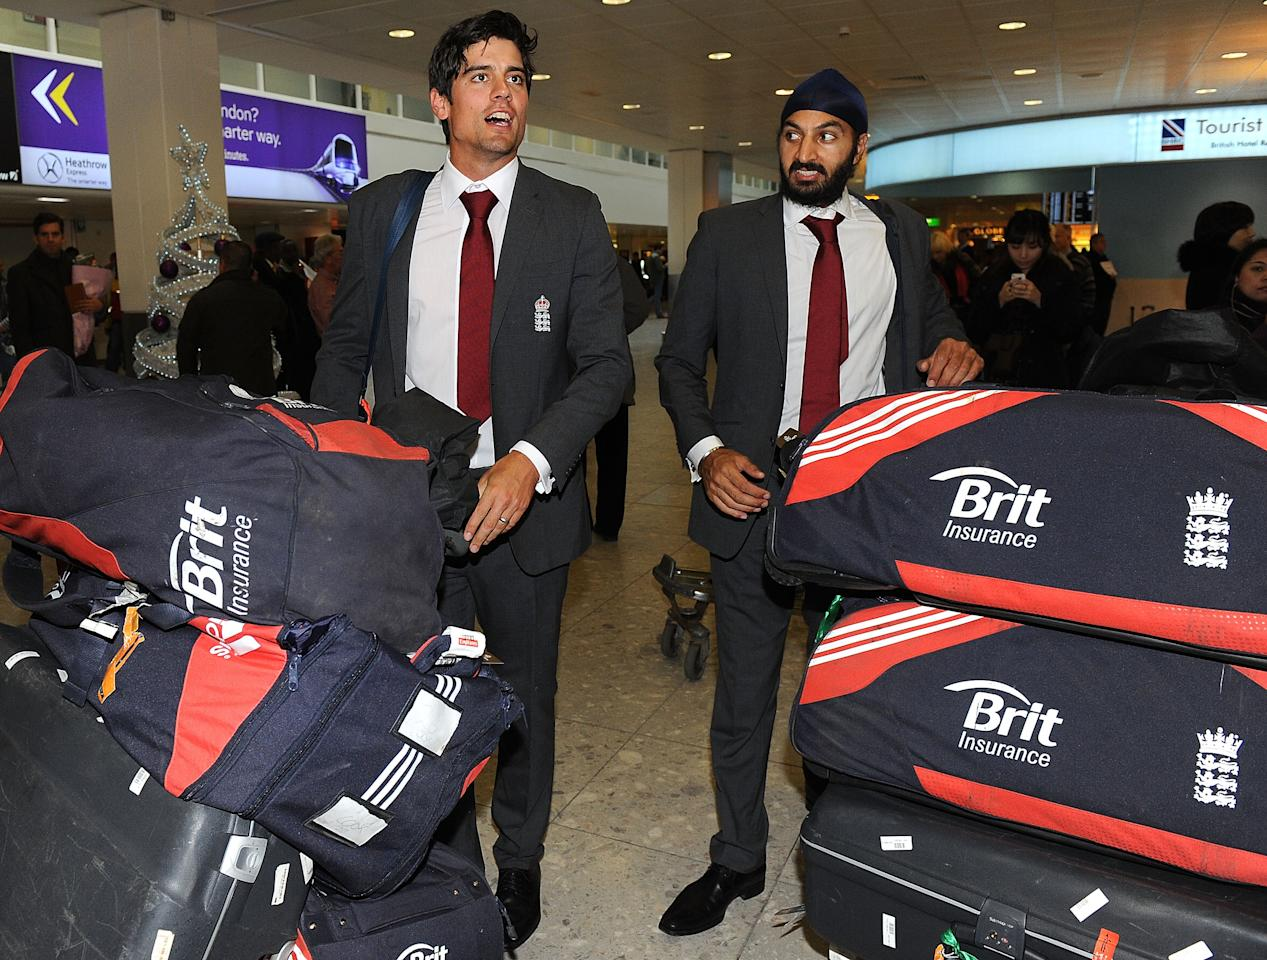 LONDON, ENGLAND - DECEMBER 18: England Cricket Team Captain Alastair Cook (L) and Monty Panesar (R) arrive at Heathrow Airport on December 18, 2012 in London, England. (Photo by Tom Dulat/Getty Images)